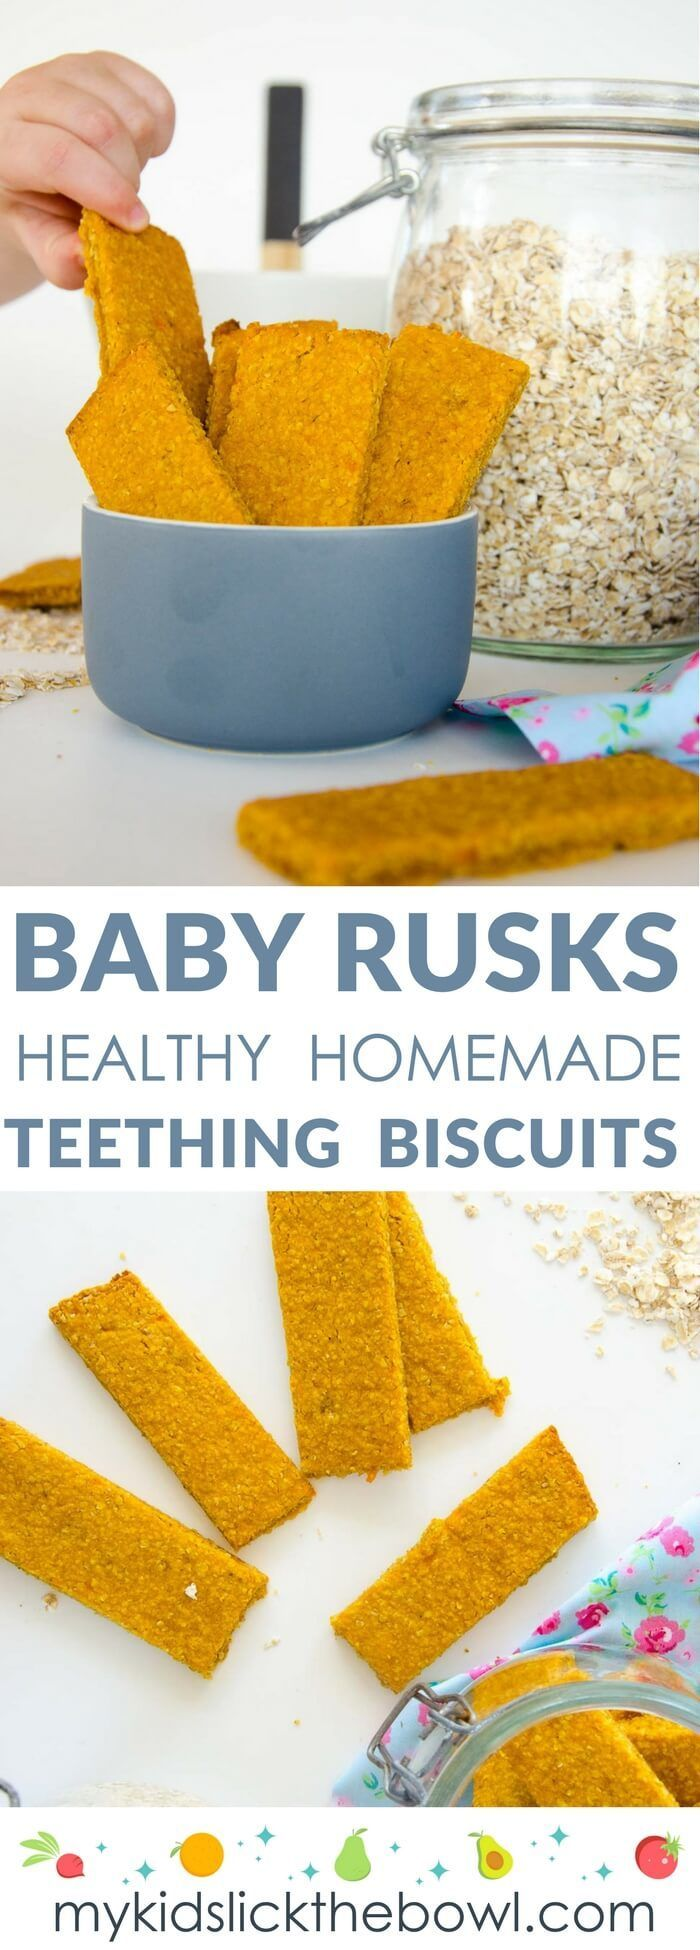 These homemade teething biscuits without the nasties, are easy to make from  sweet potato, oats, and chamomile